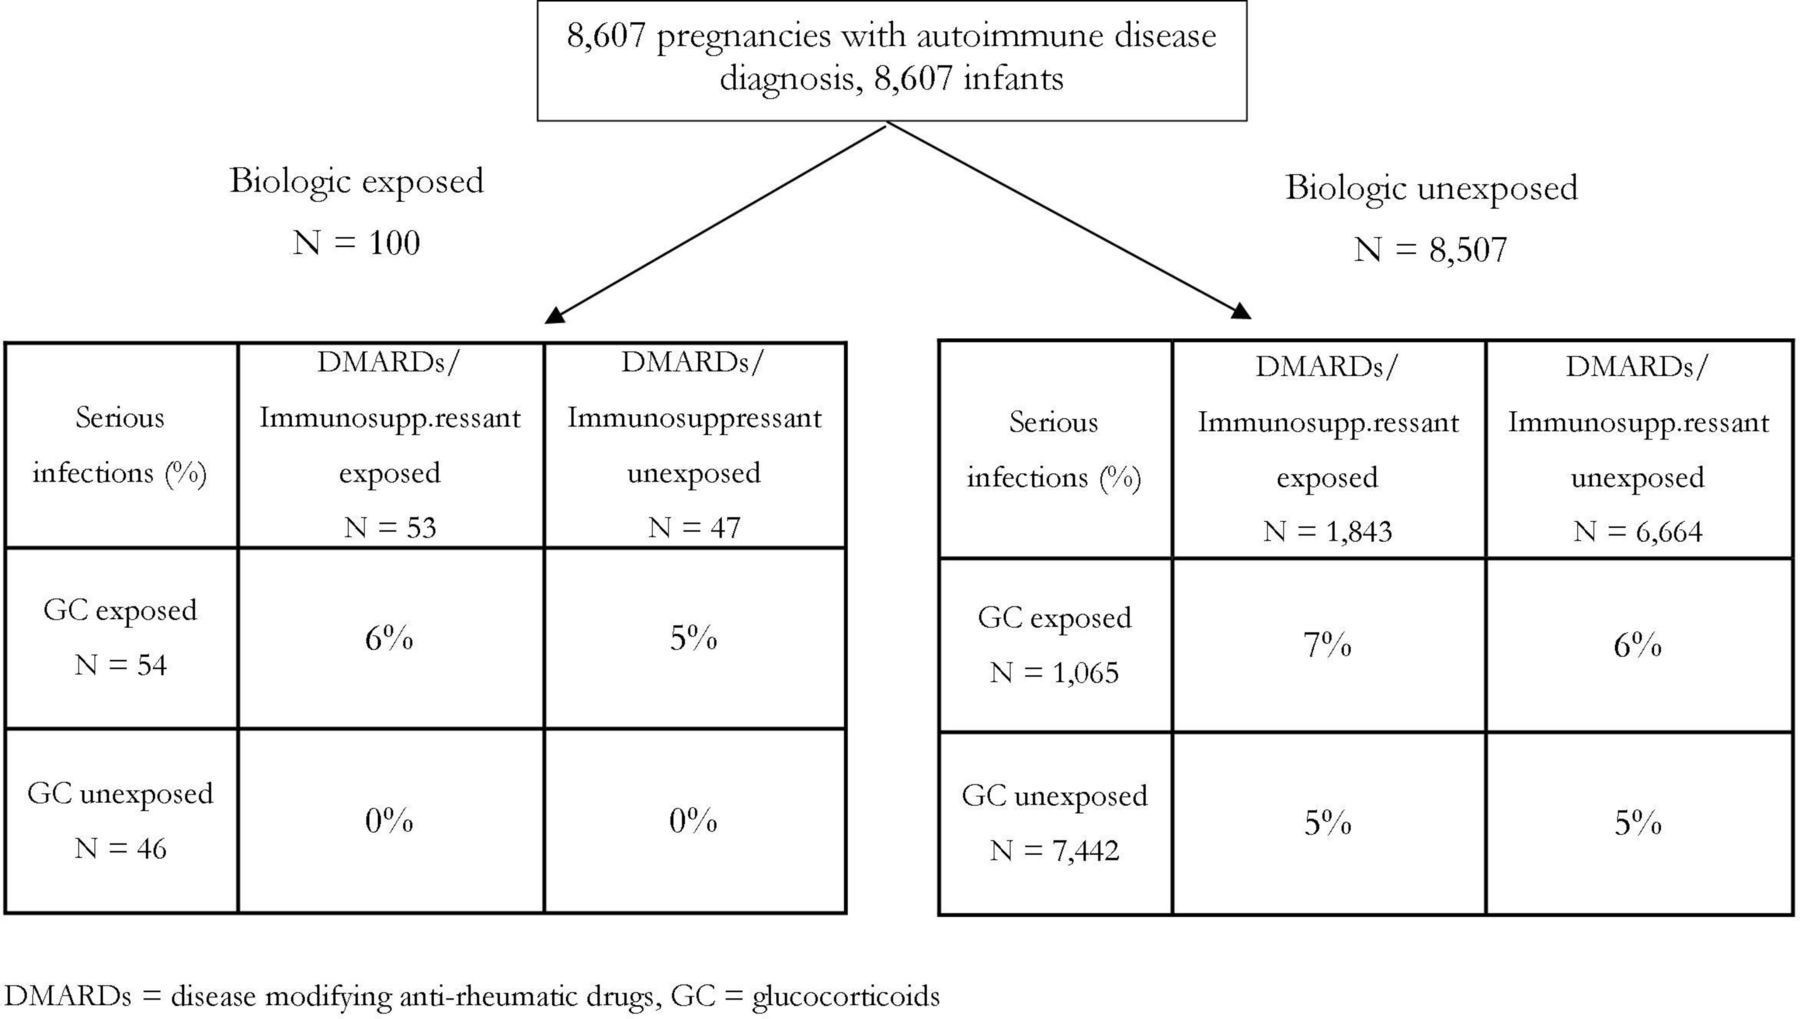 Type Timing Of Maternal Infection >> Use Of Biologics During Pregnancy And Risk Of Serious Infections In